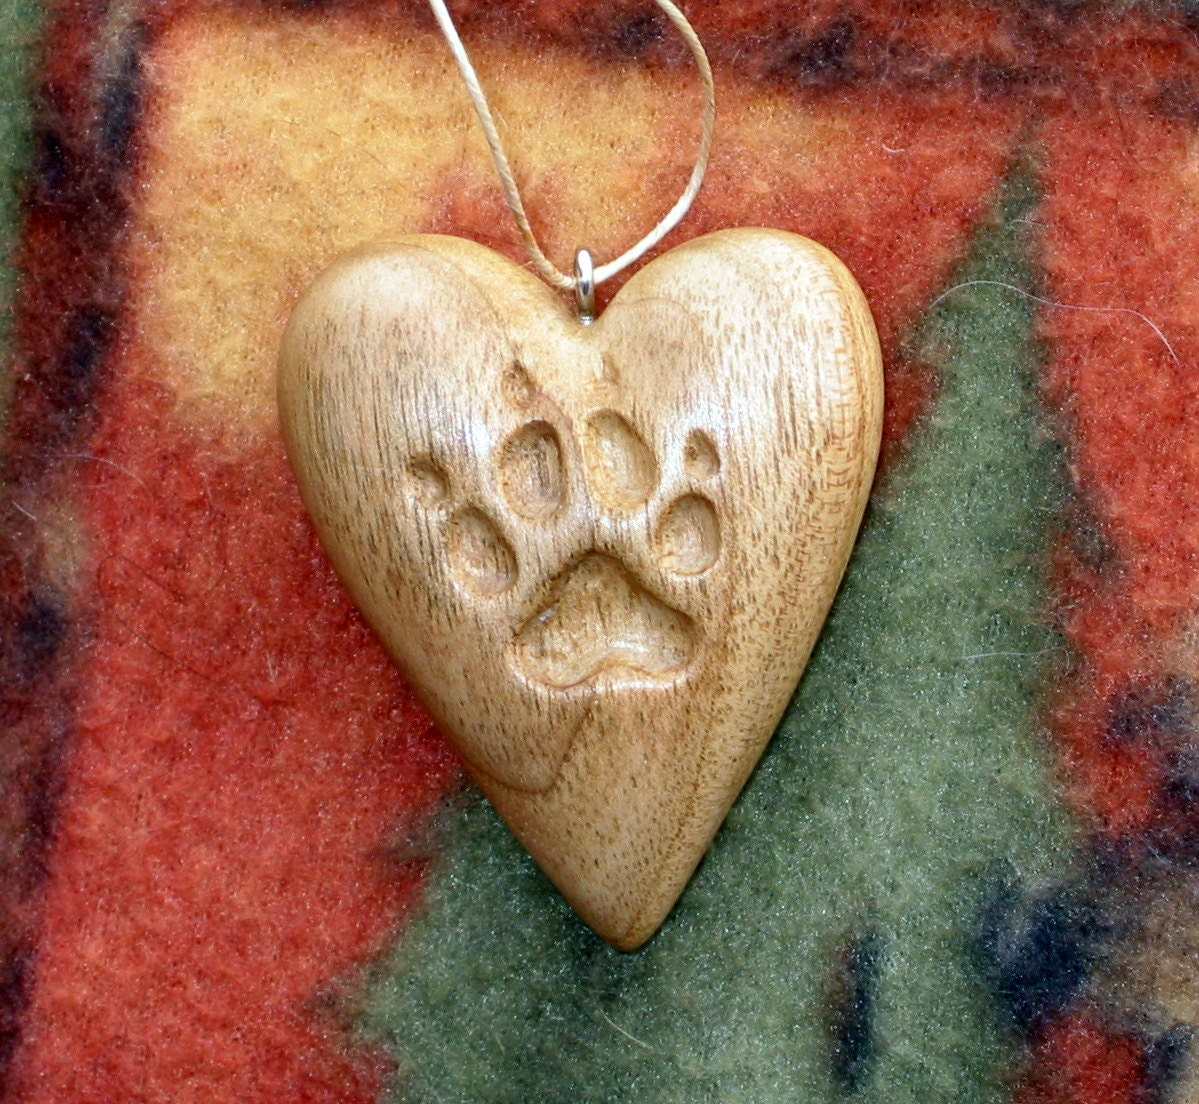 Heart w dog paw print wood carving ornament pendant hand